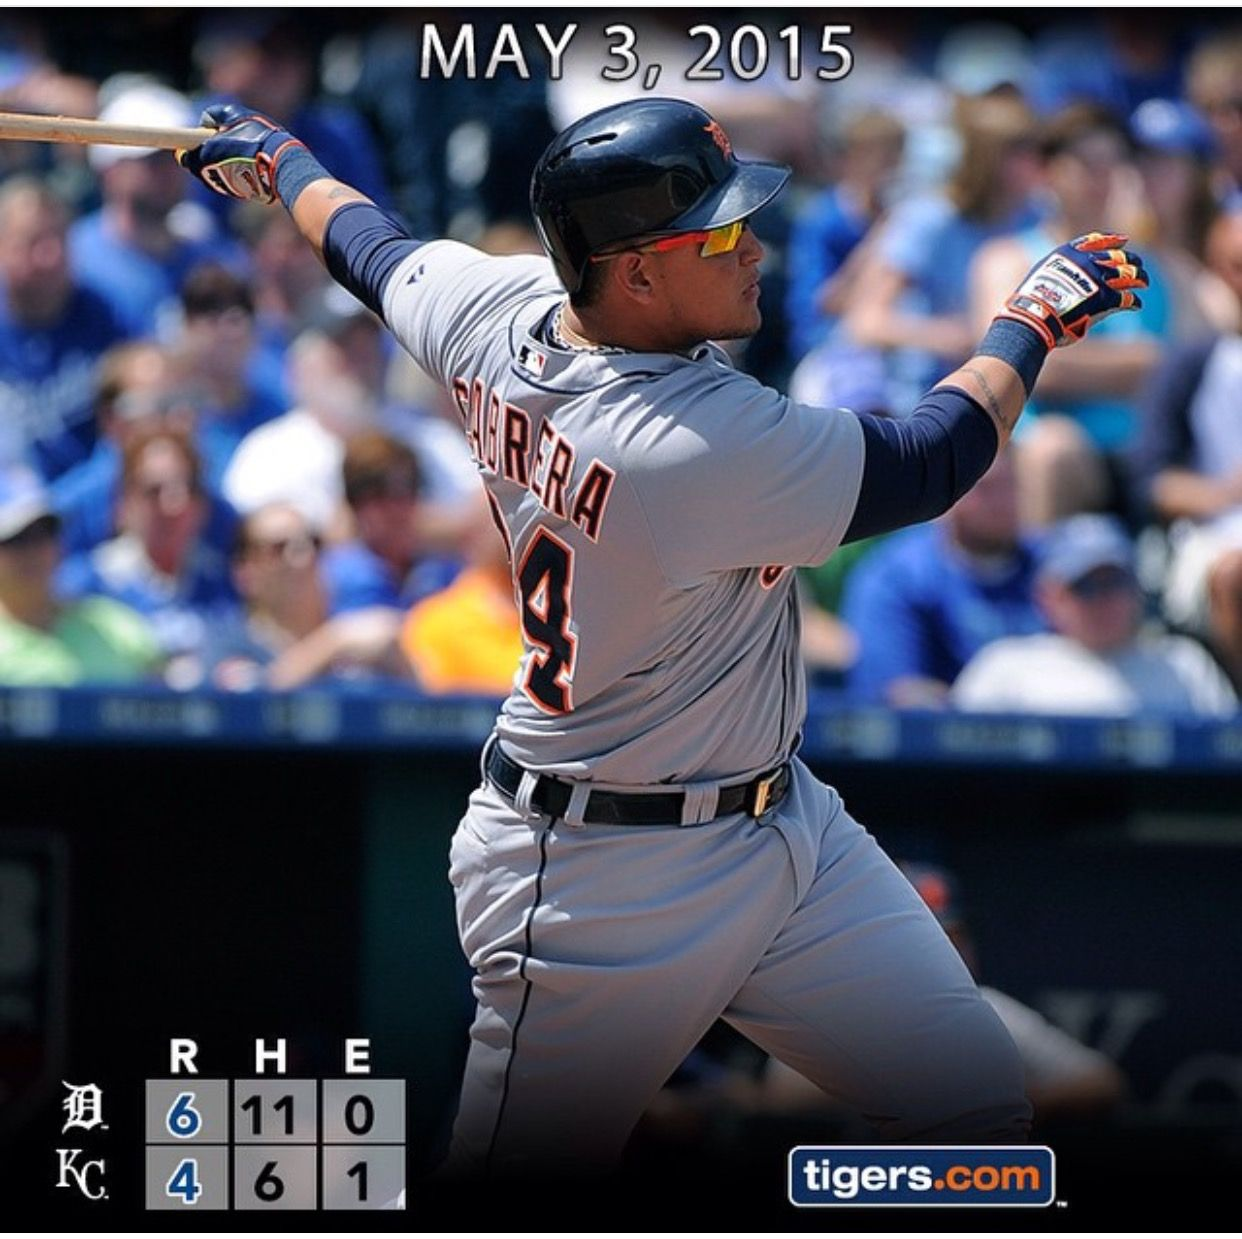 Pin by Shelby on Detroit Tigers Detroit tigers baseball